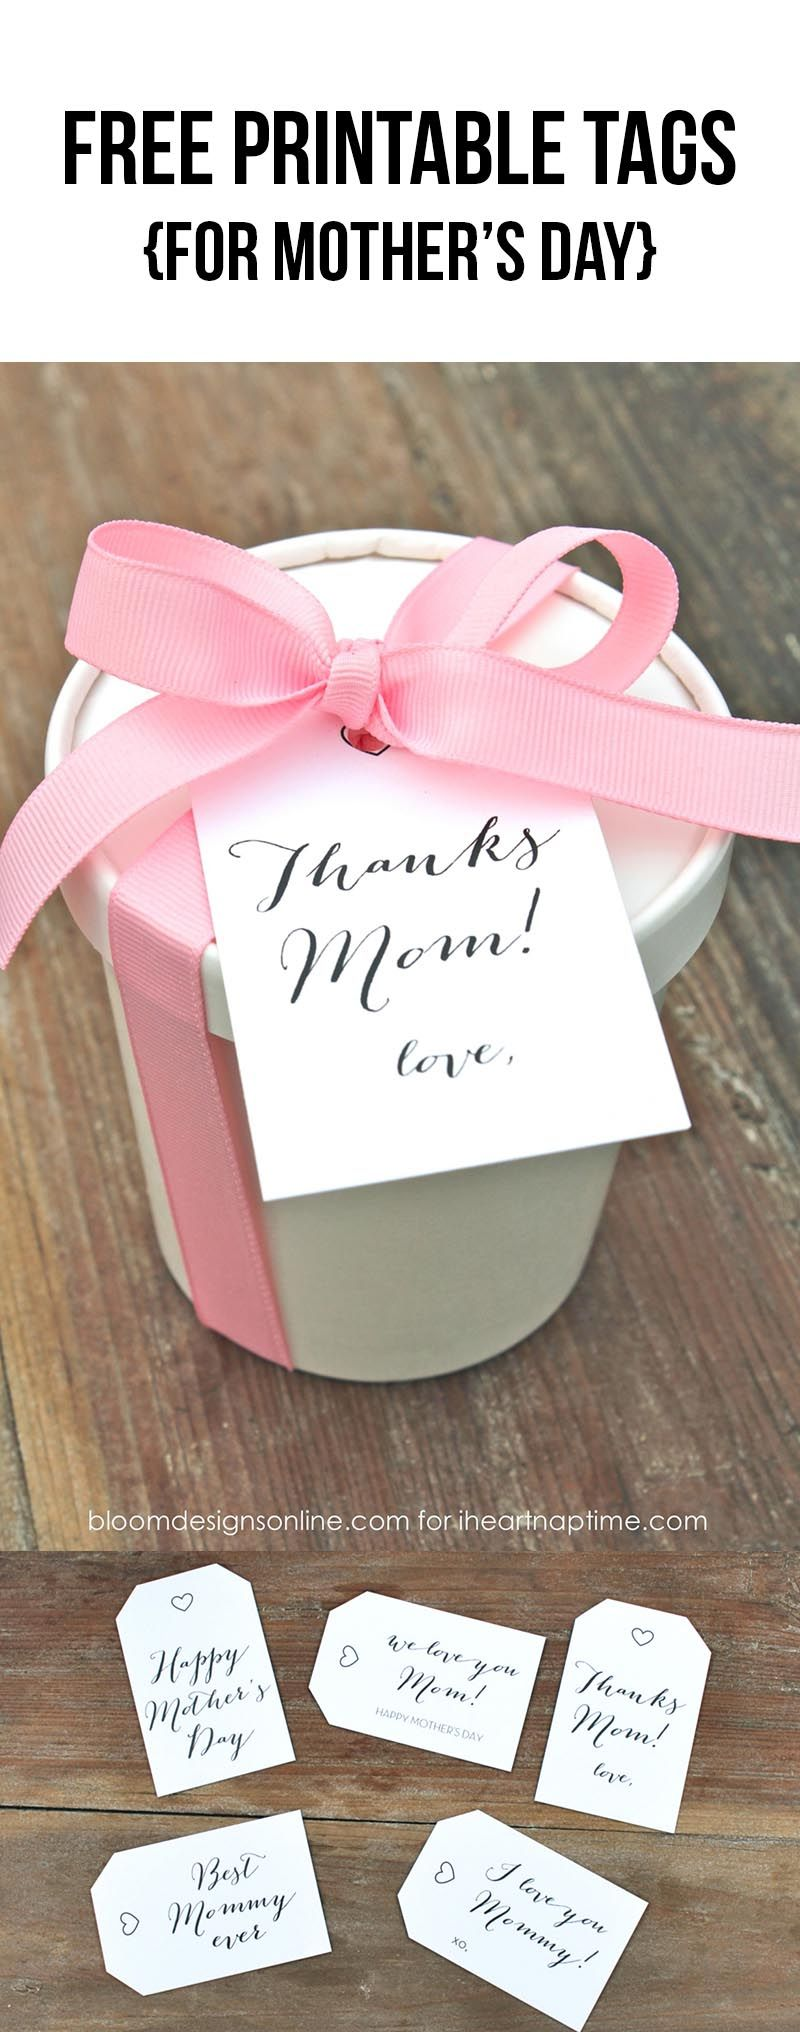 Free printable tags for Mother's Day - so cute and simple!